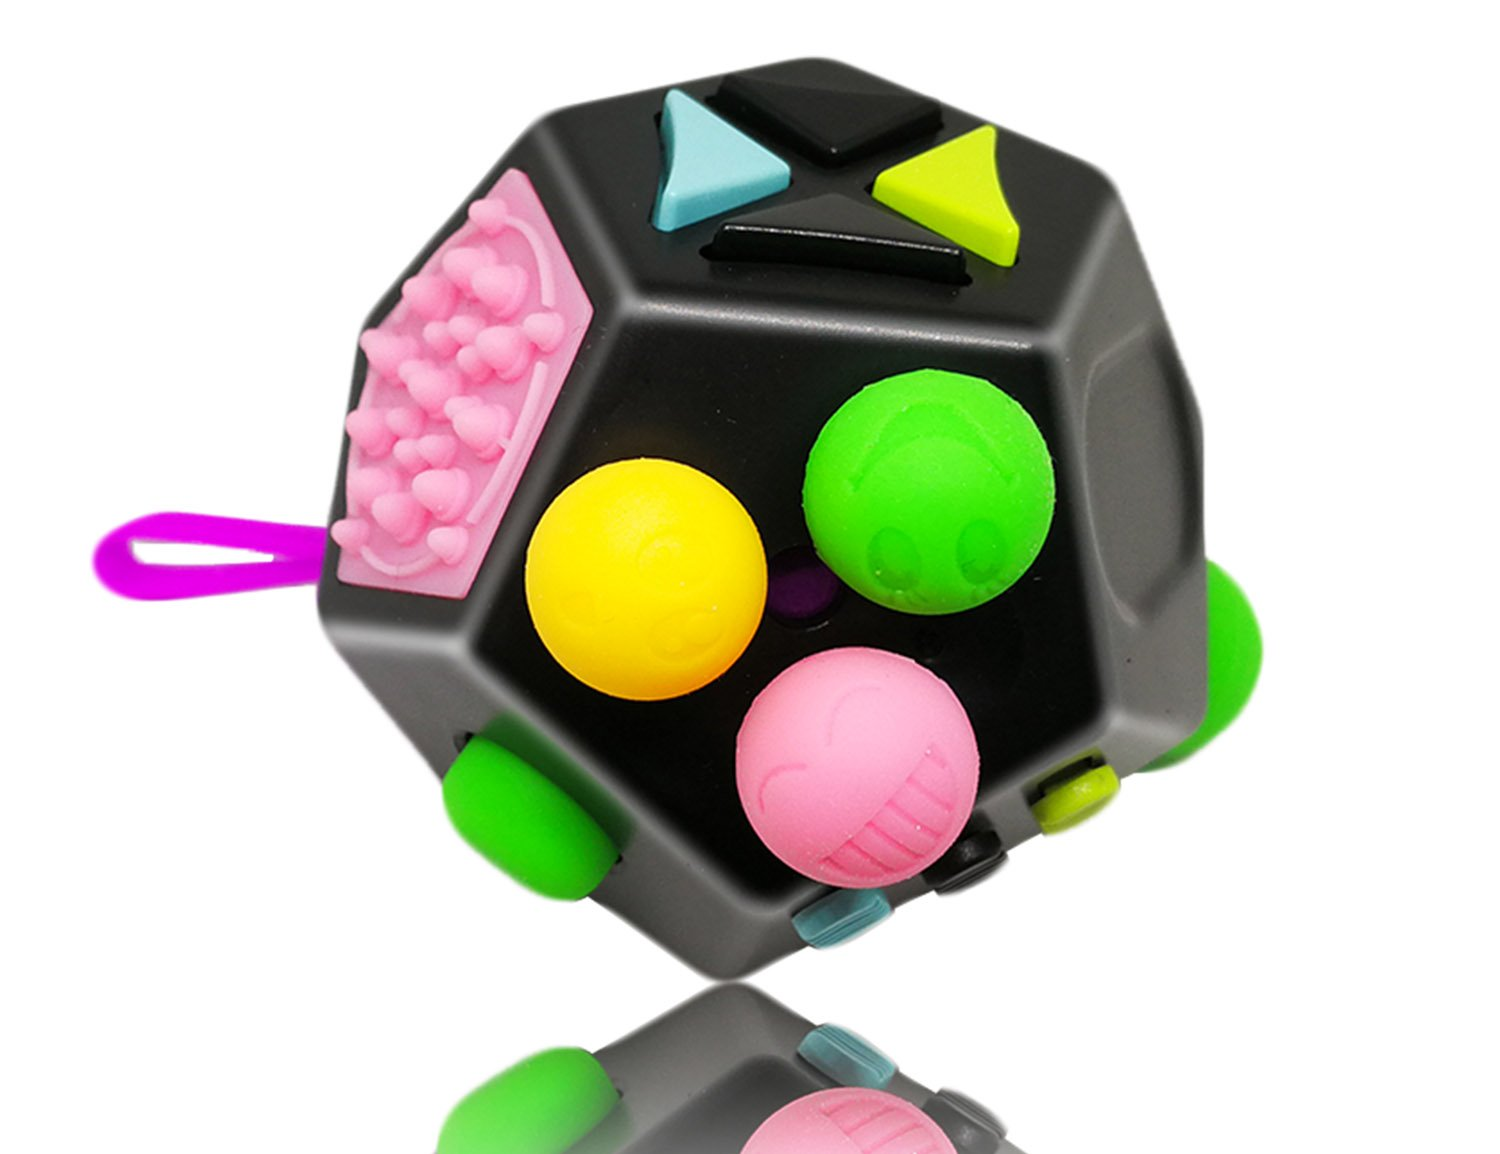 Fidget Cube 12 Sides Dodecagon Toy Stress and Anxiety Relief Relax for Children and Adults ADD/ADHD/OCD and Autisme Focus Distraction (Black& MixColor) yiiyaa DGC2257